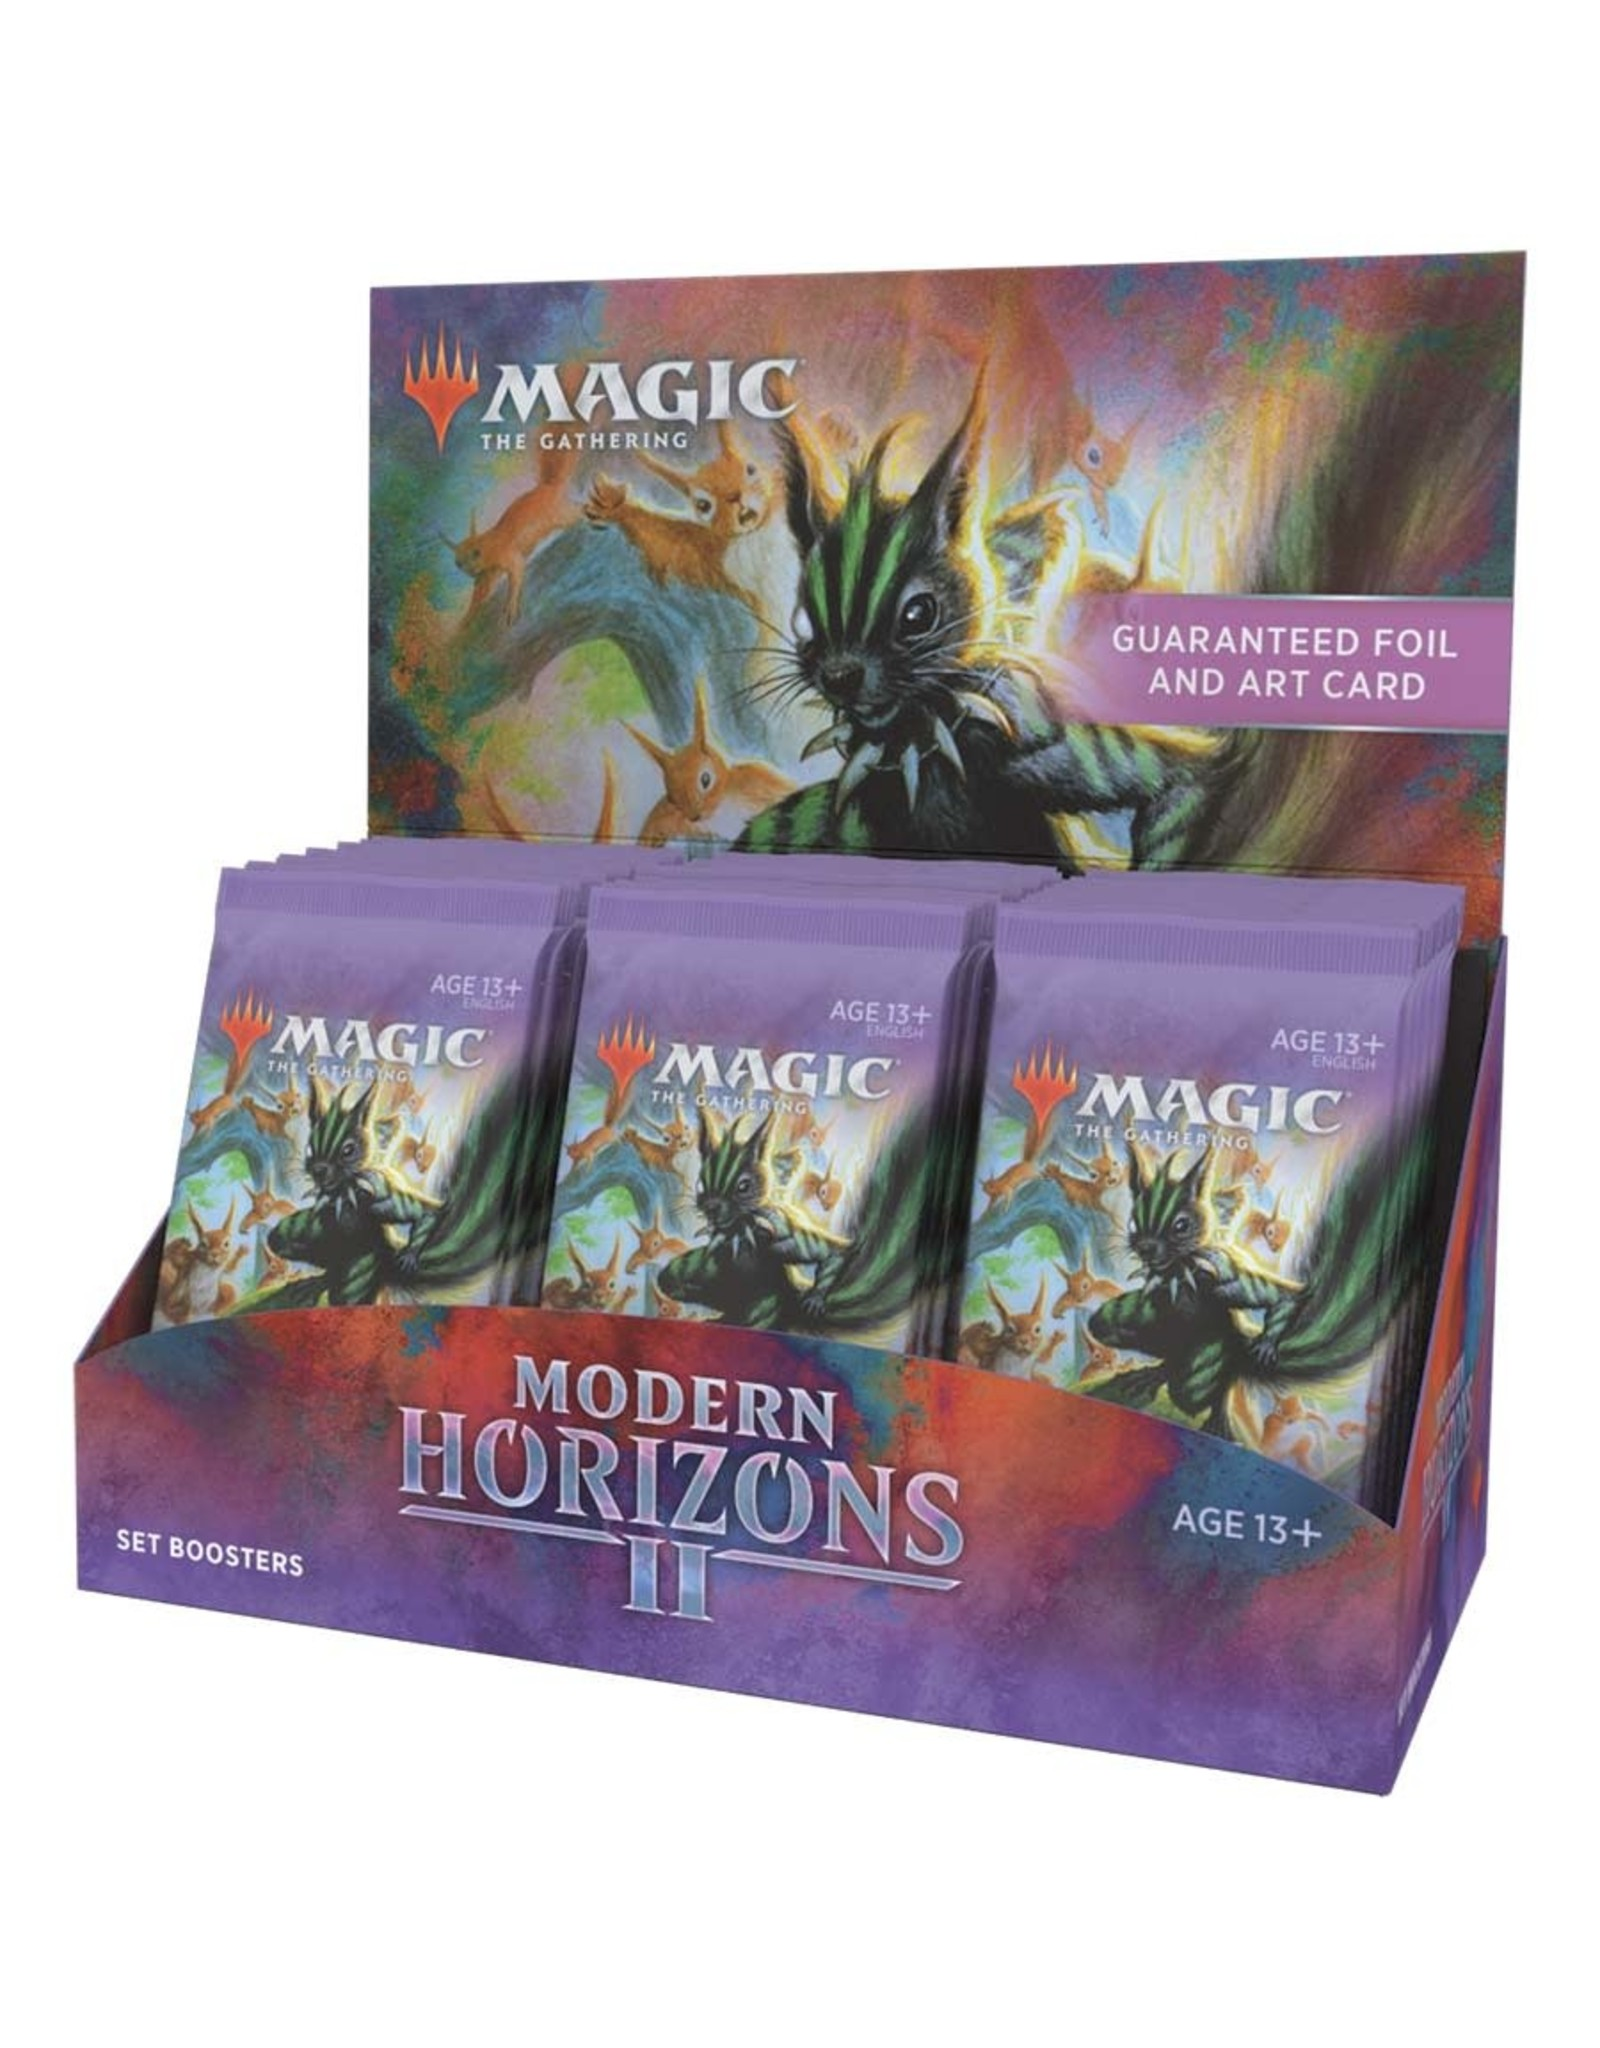 WIZARDS OF THE COAST MODERN HORIZONS II SET BOOSTER BOX PRE-ORDER